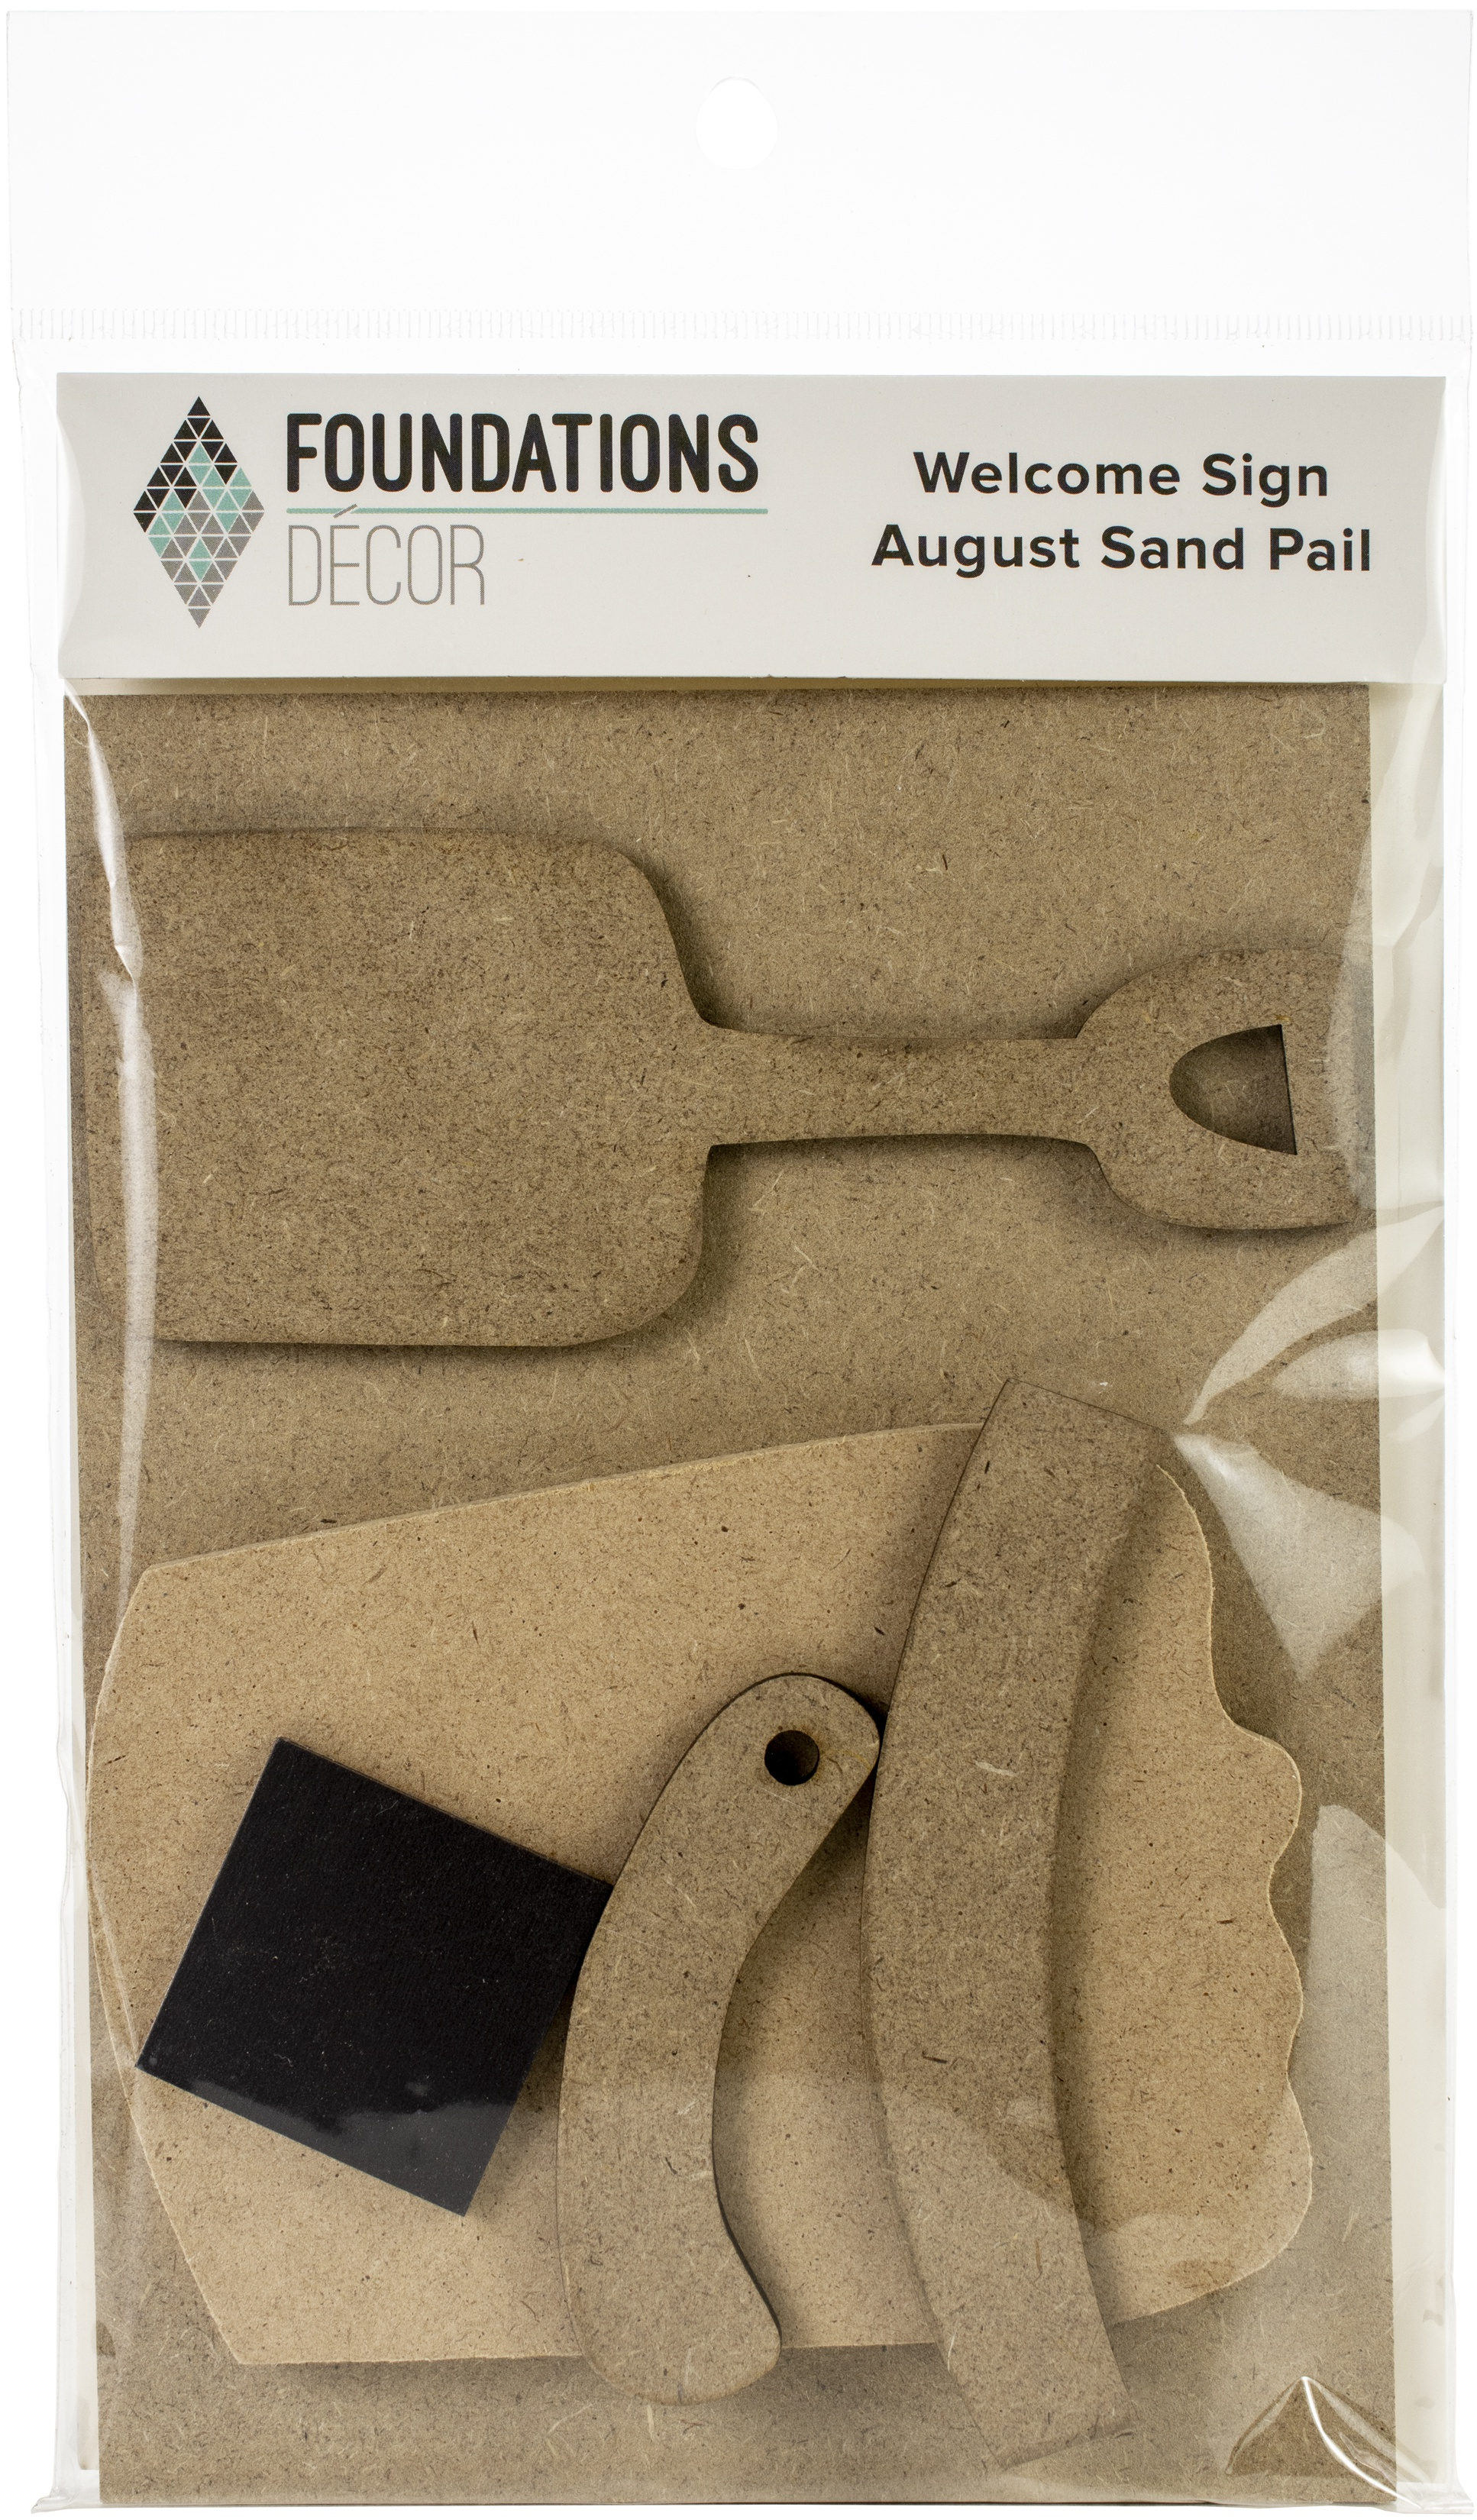 Foundations Decor Welcome Sign Kits-August - Sand Pail/Shovel